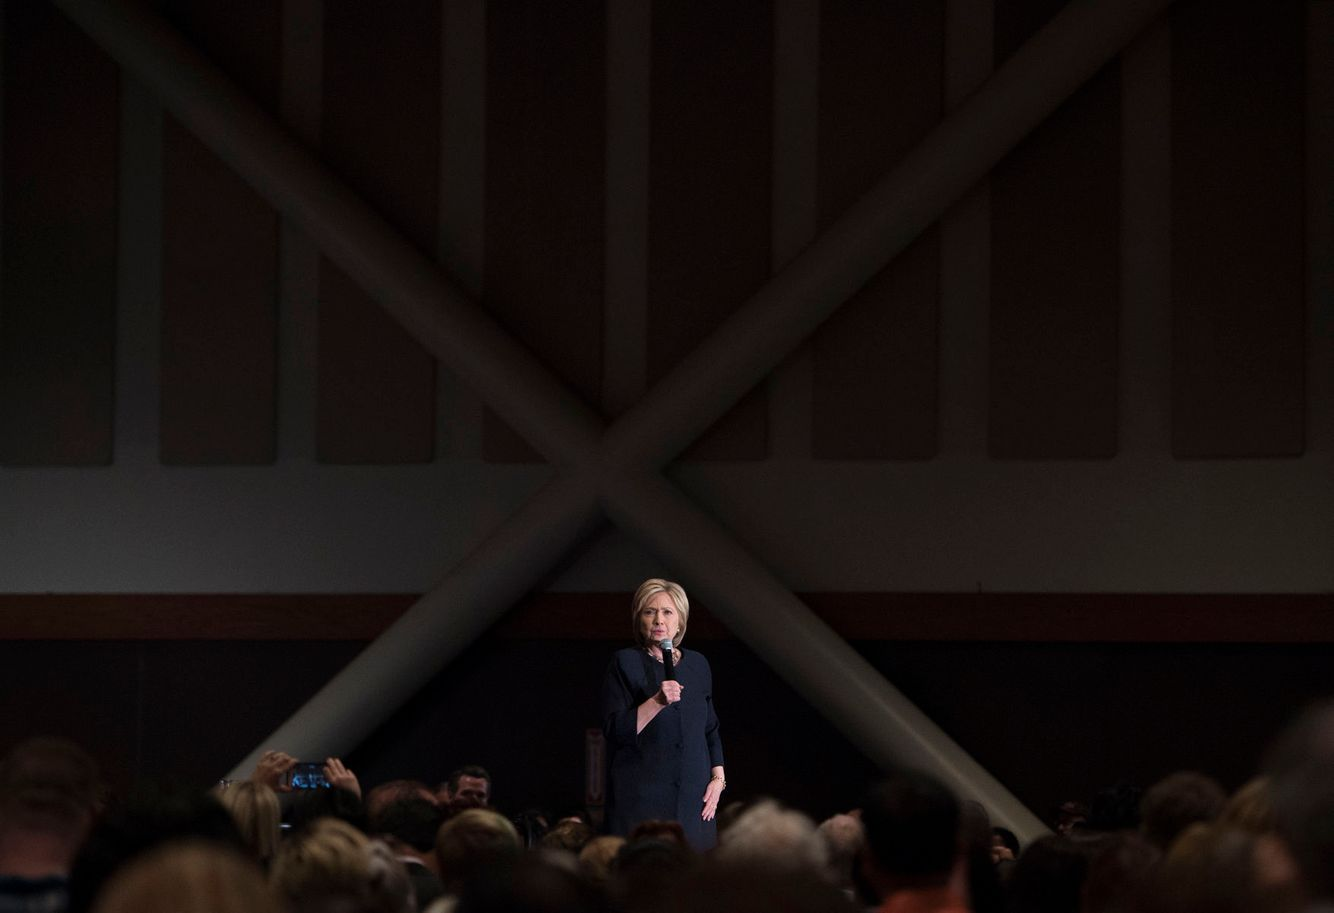 Hillary Clinton speaks during a campaign event in Las Vegas.